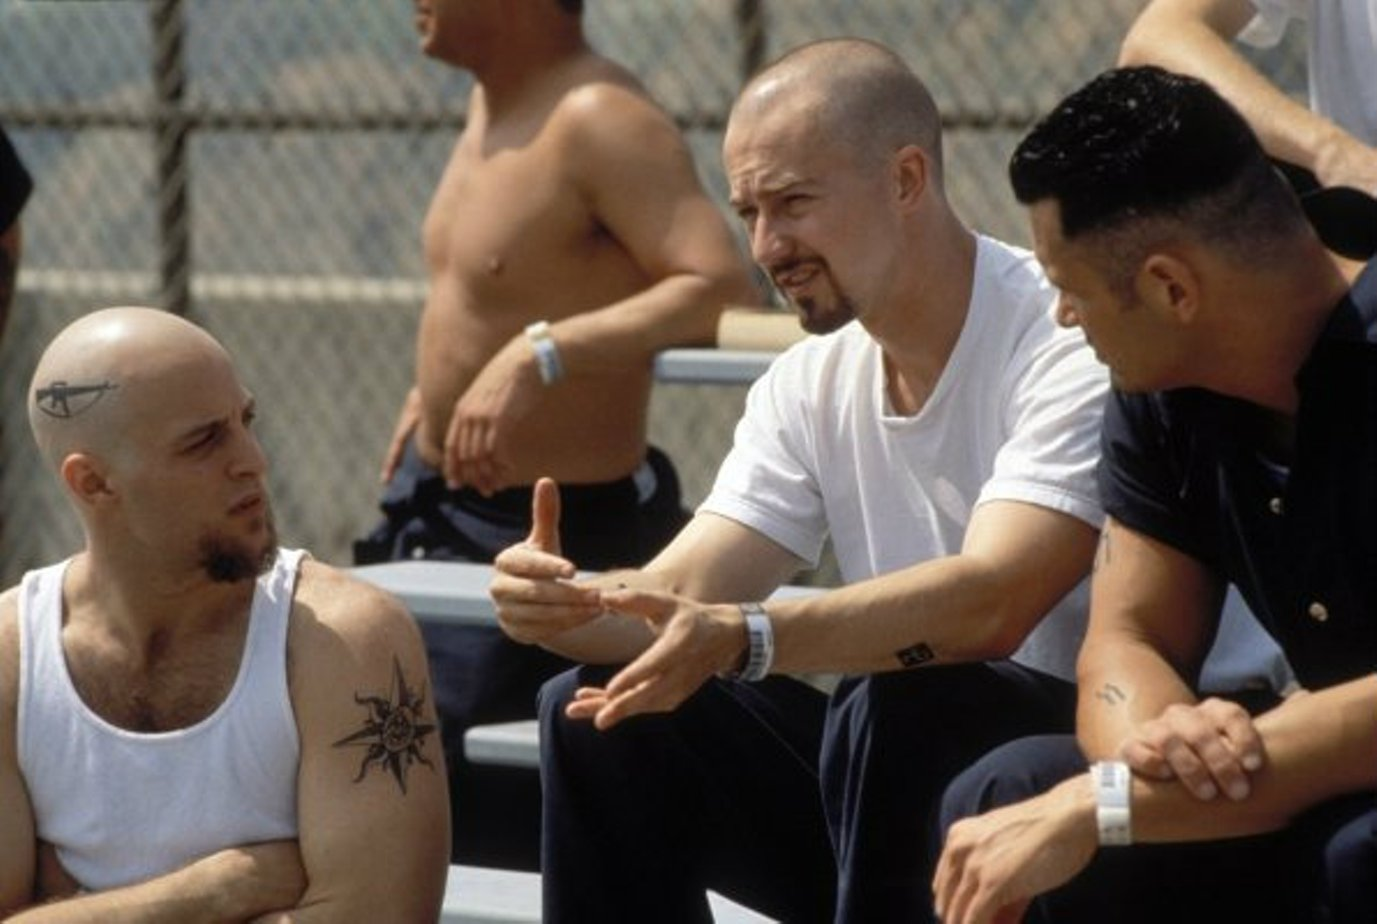 a review of the film american history x American history x movie review american history x is a powerful movie about racism in today's society it follows the life of a troubled teenager danny vinyard played by edward furlong, who looks up to his neo-nazi brother derek.